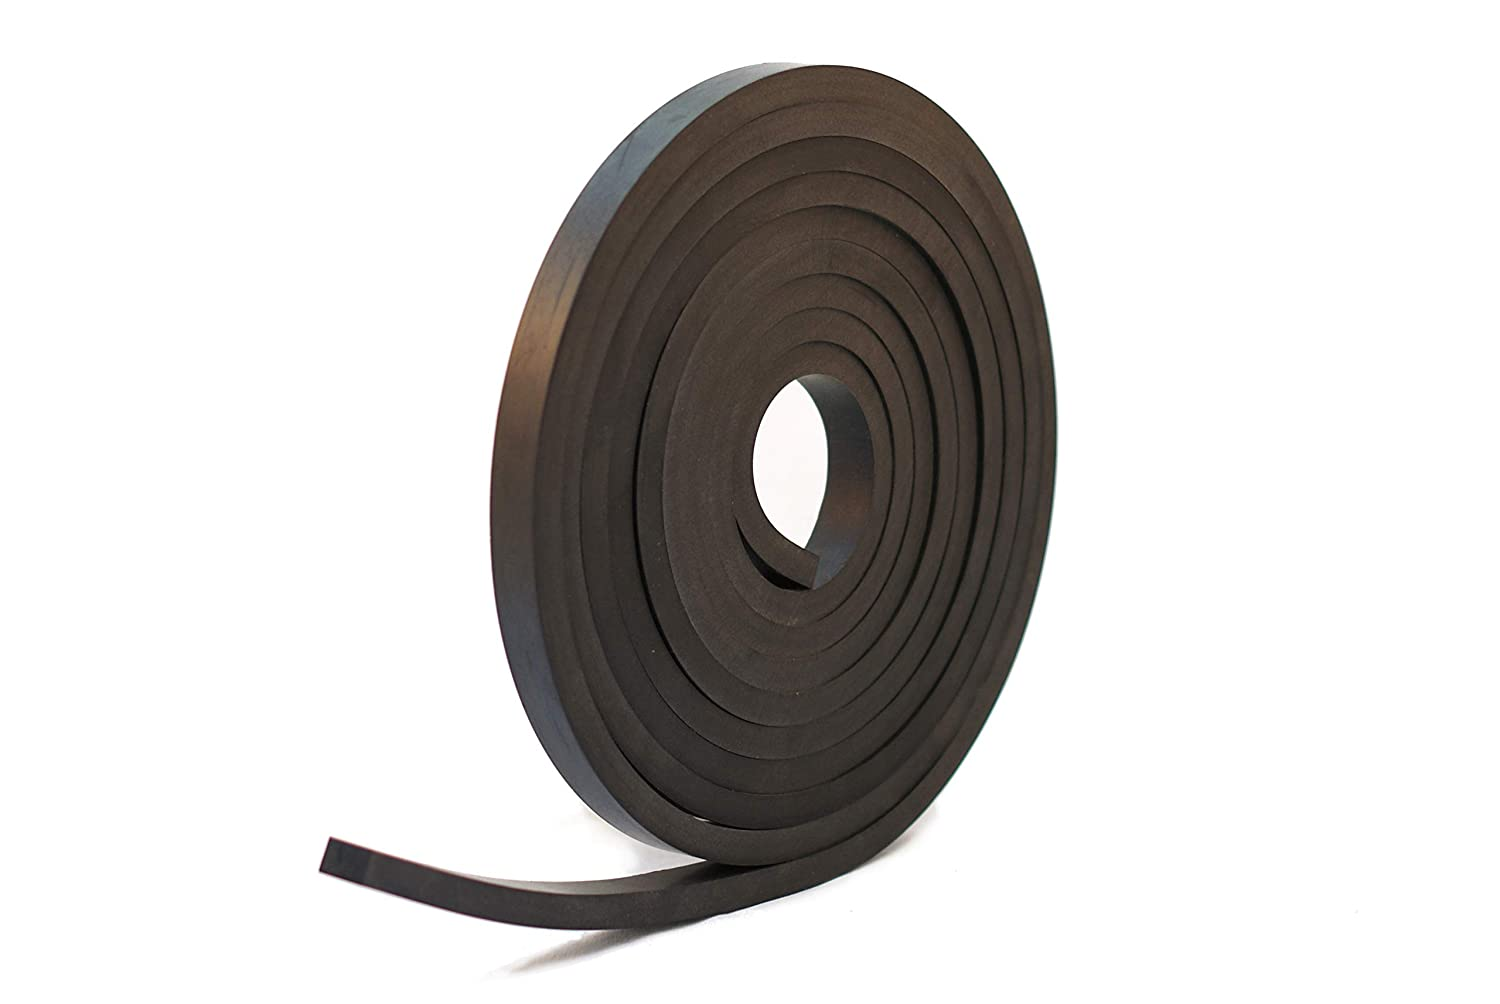 Solid Neoprene Black Rubber Strip 5//8 Wide x 3//8 Thick x 16 feet Long